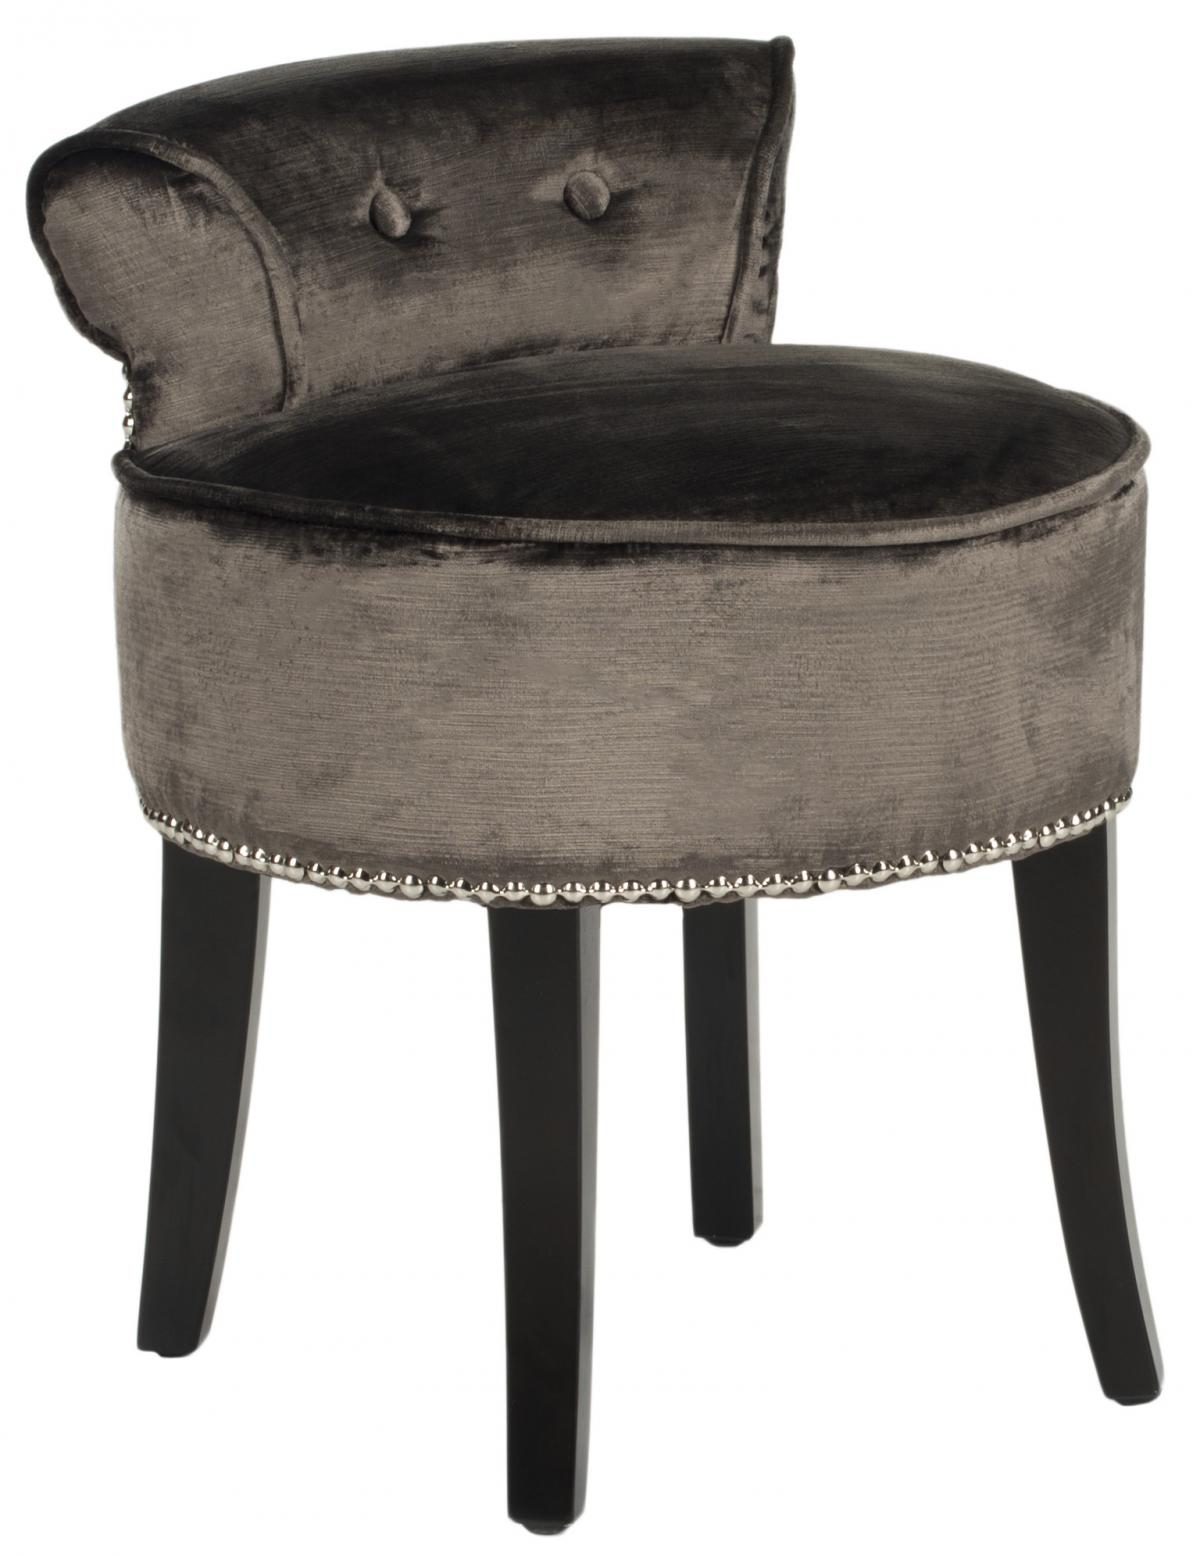 Tufted Vanity Chair Safavieh Mcr4546h Georgia Vanity Chair Pewter